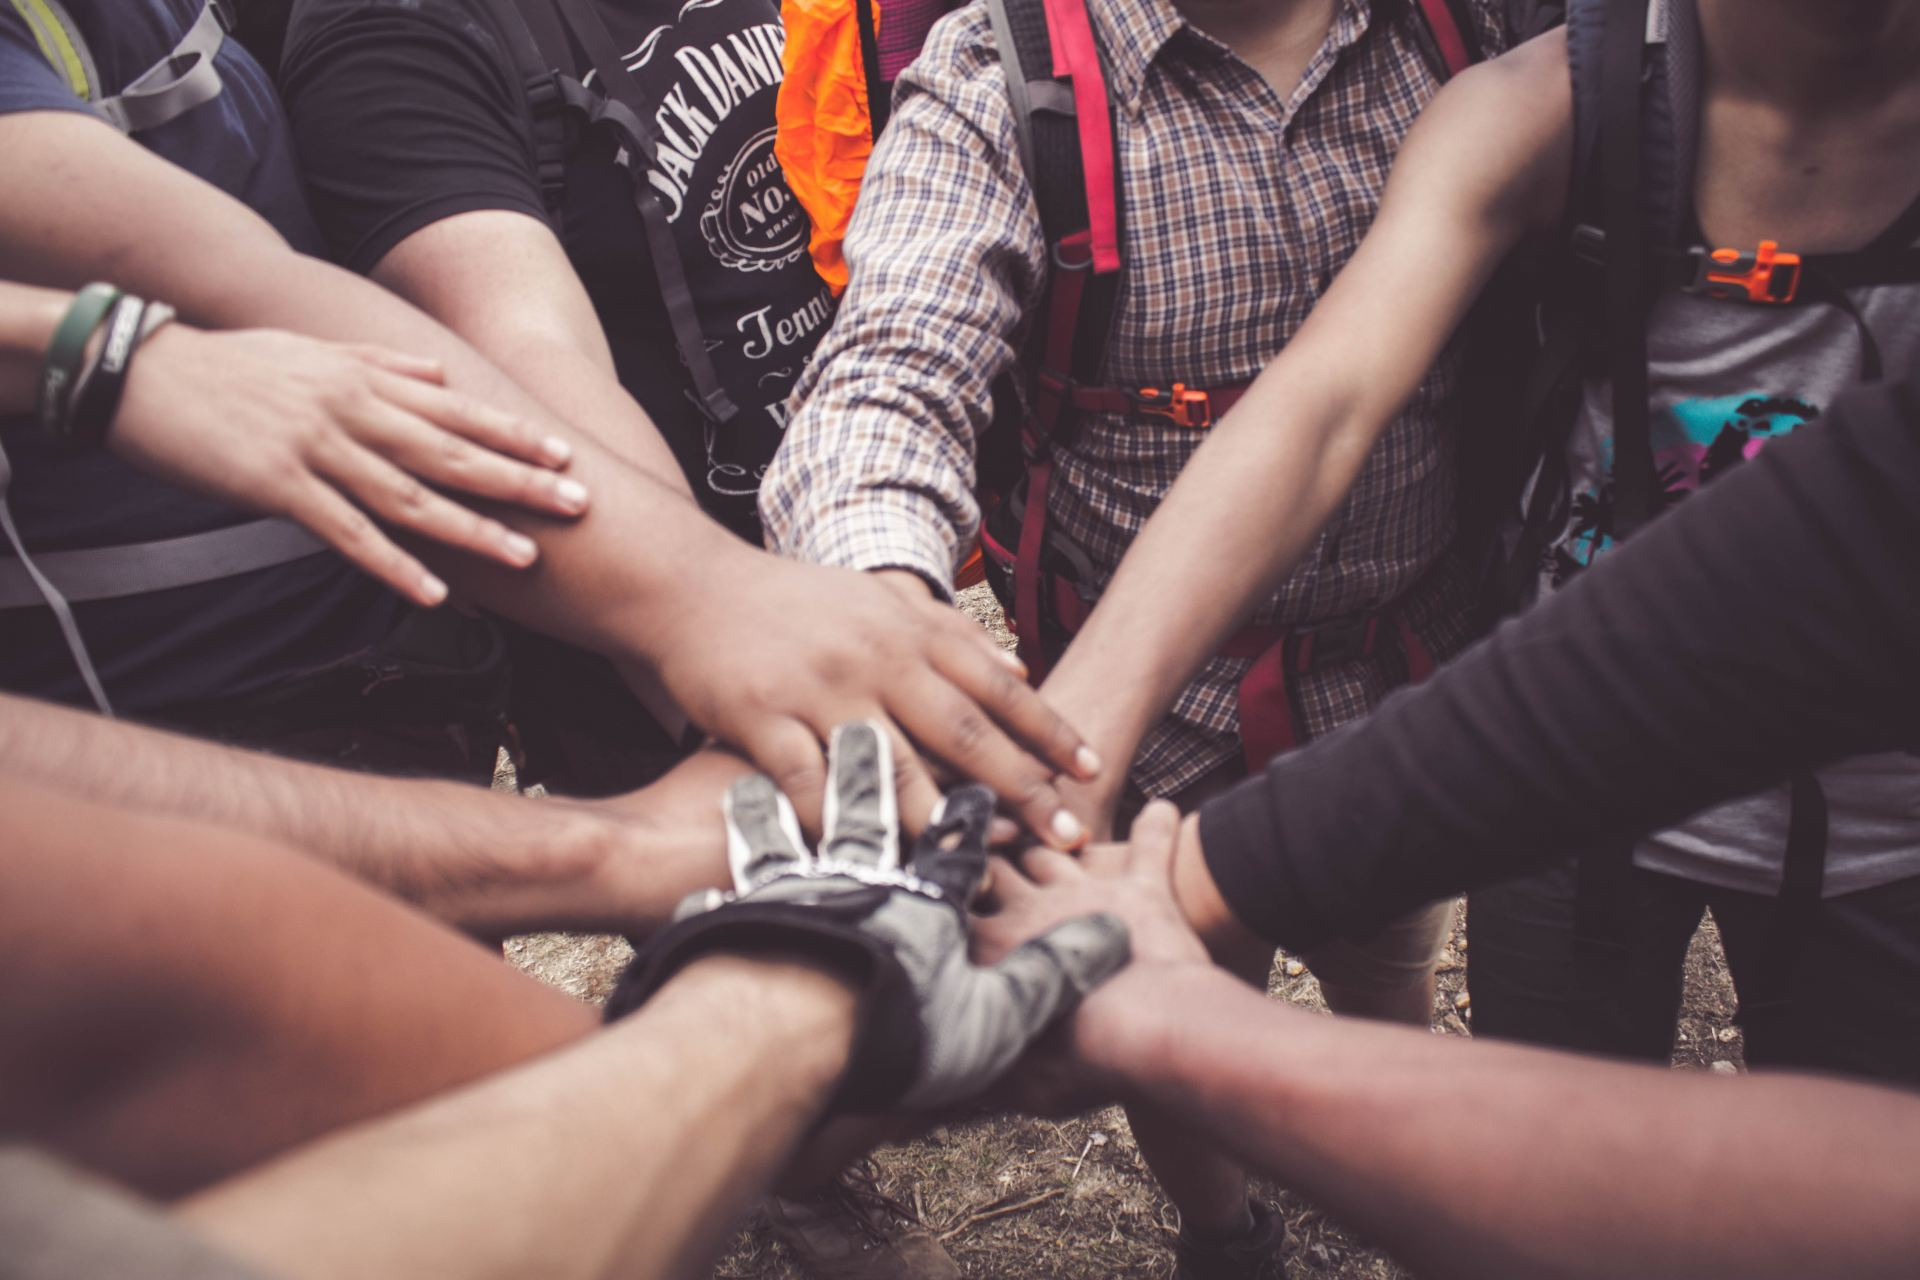 A group of people all putting their hands together in the middle of a circle